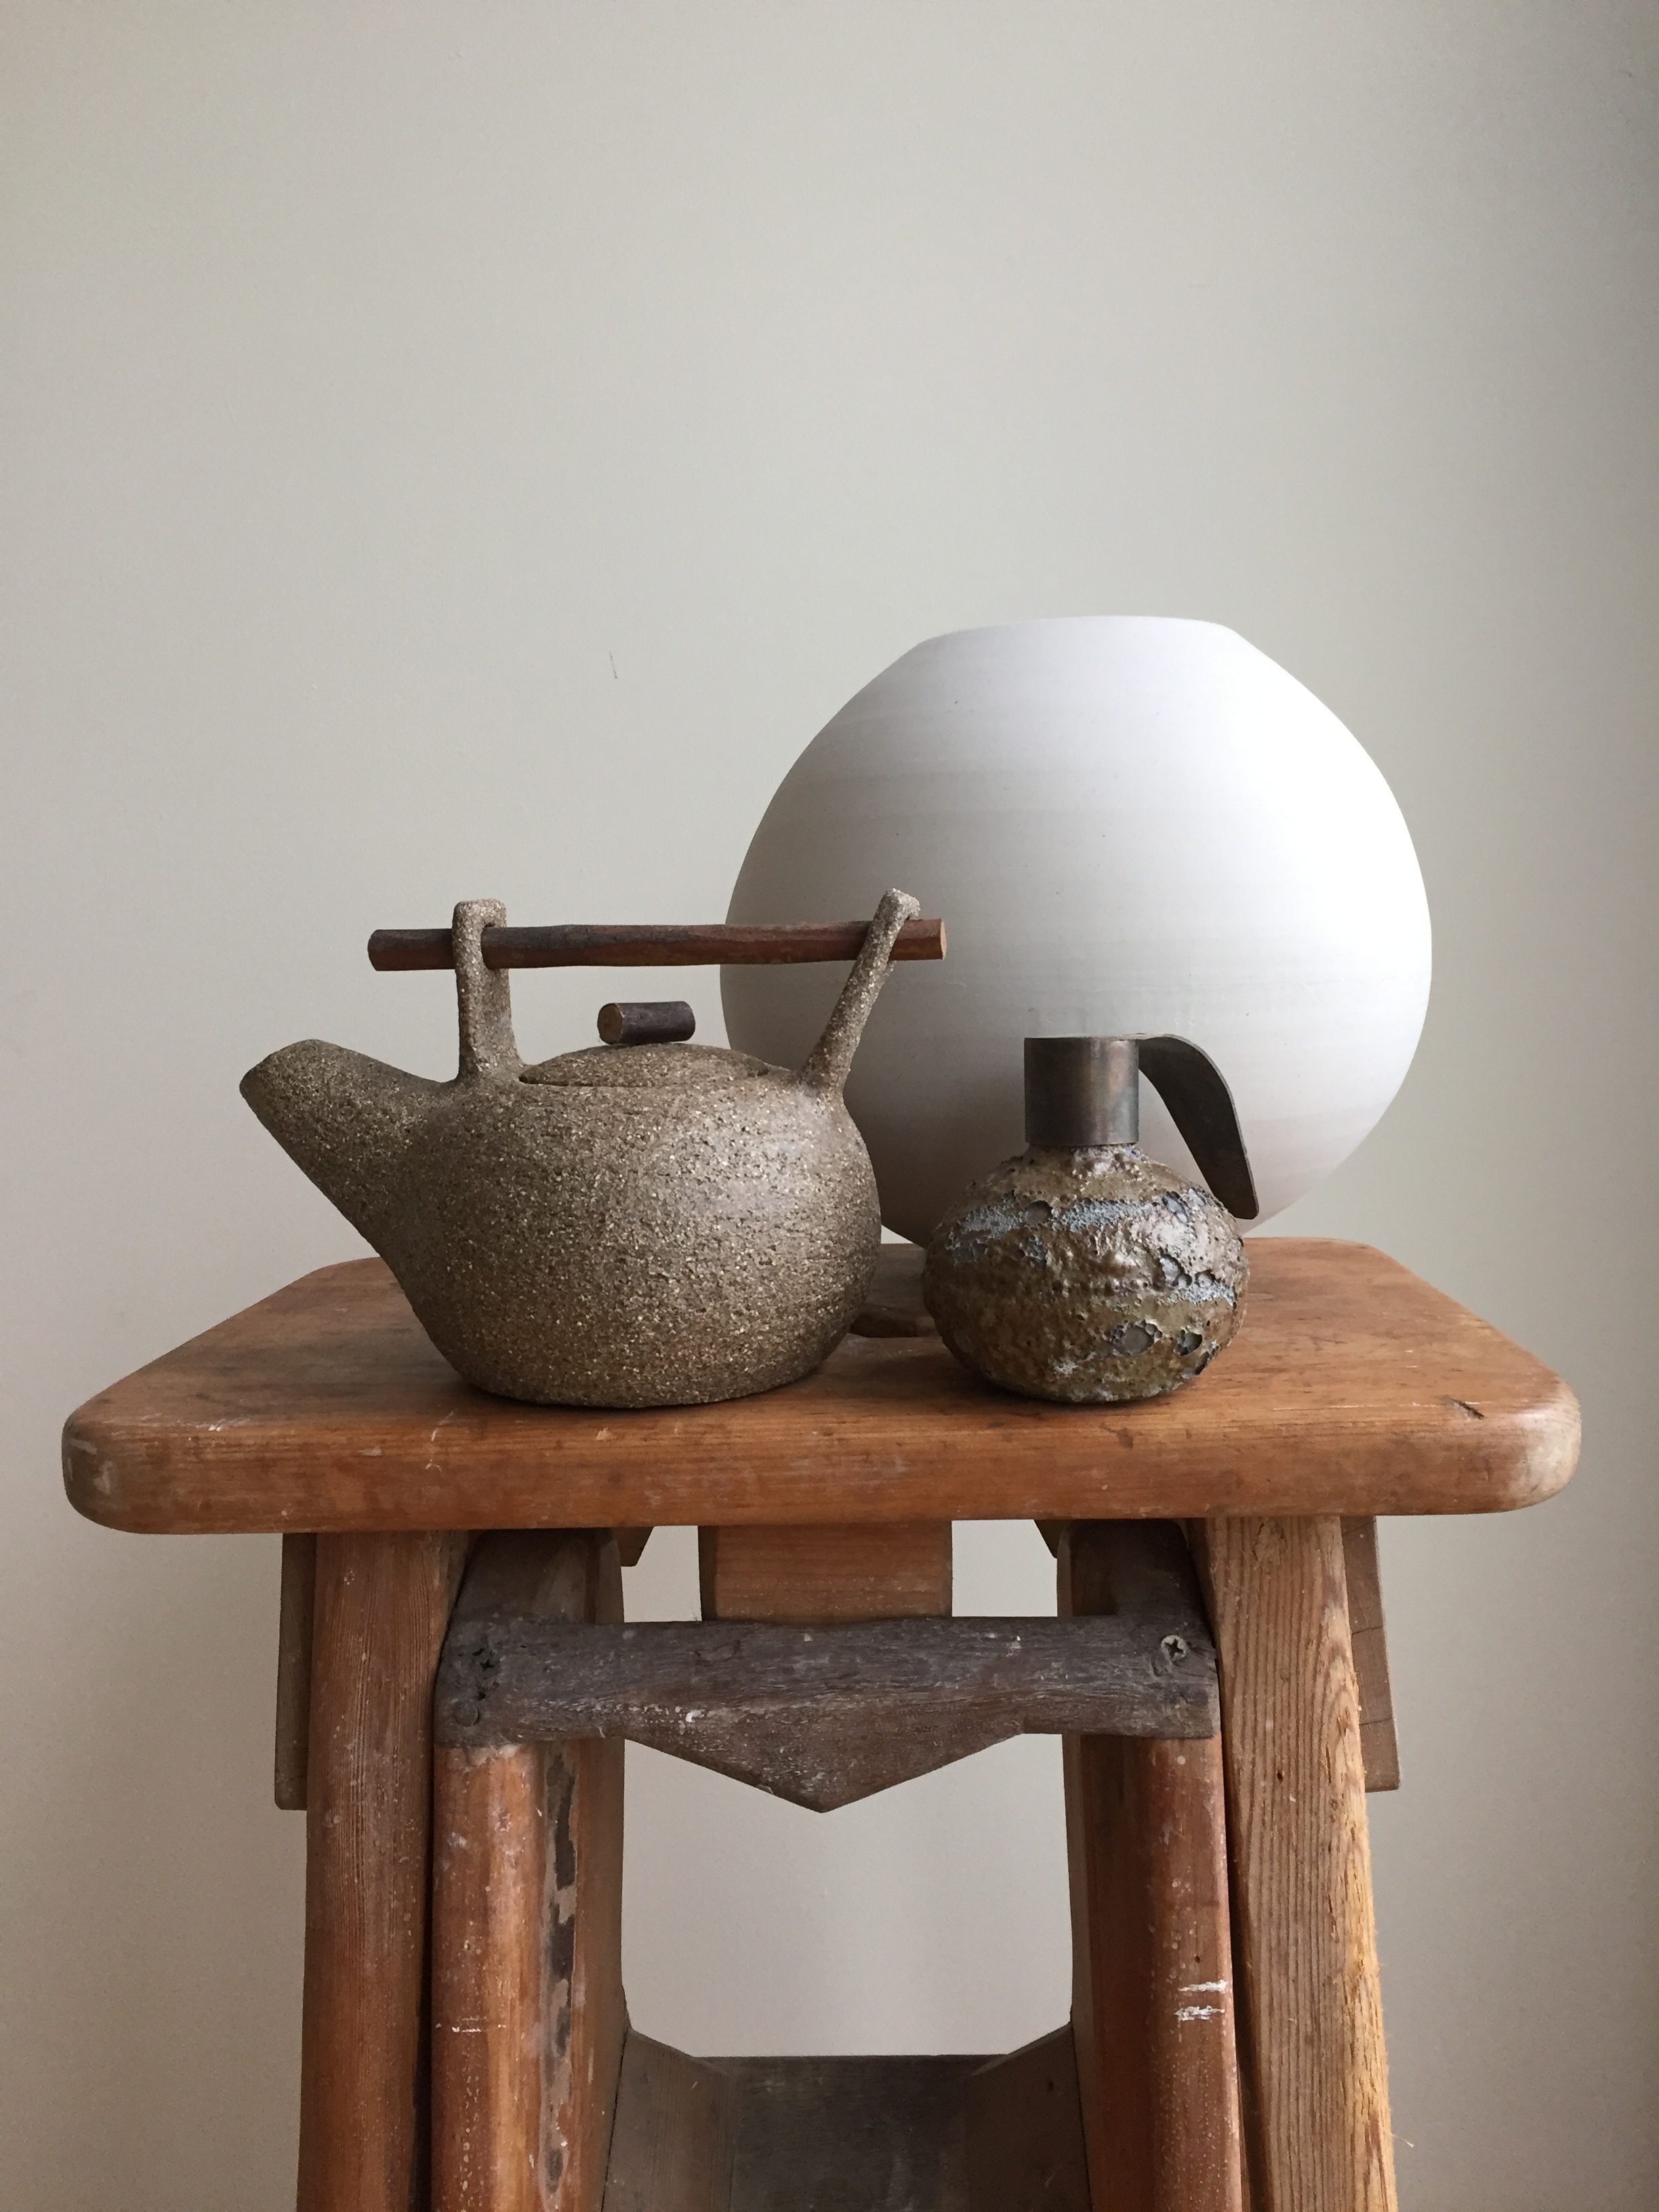 north_carlton_ceramics_group_image.jpg